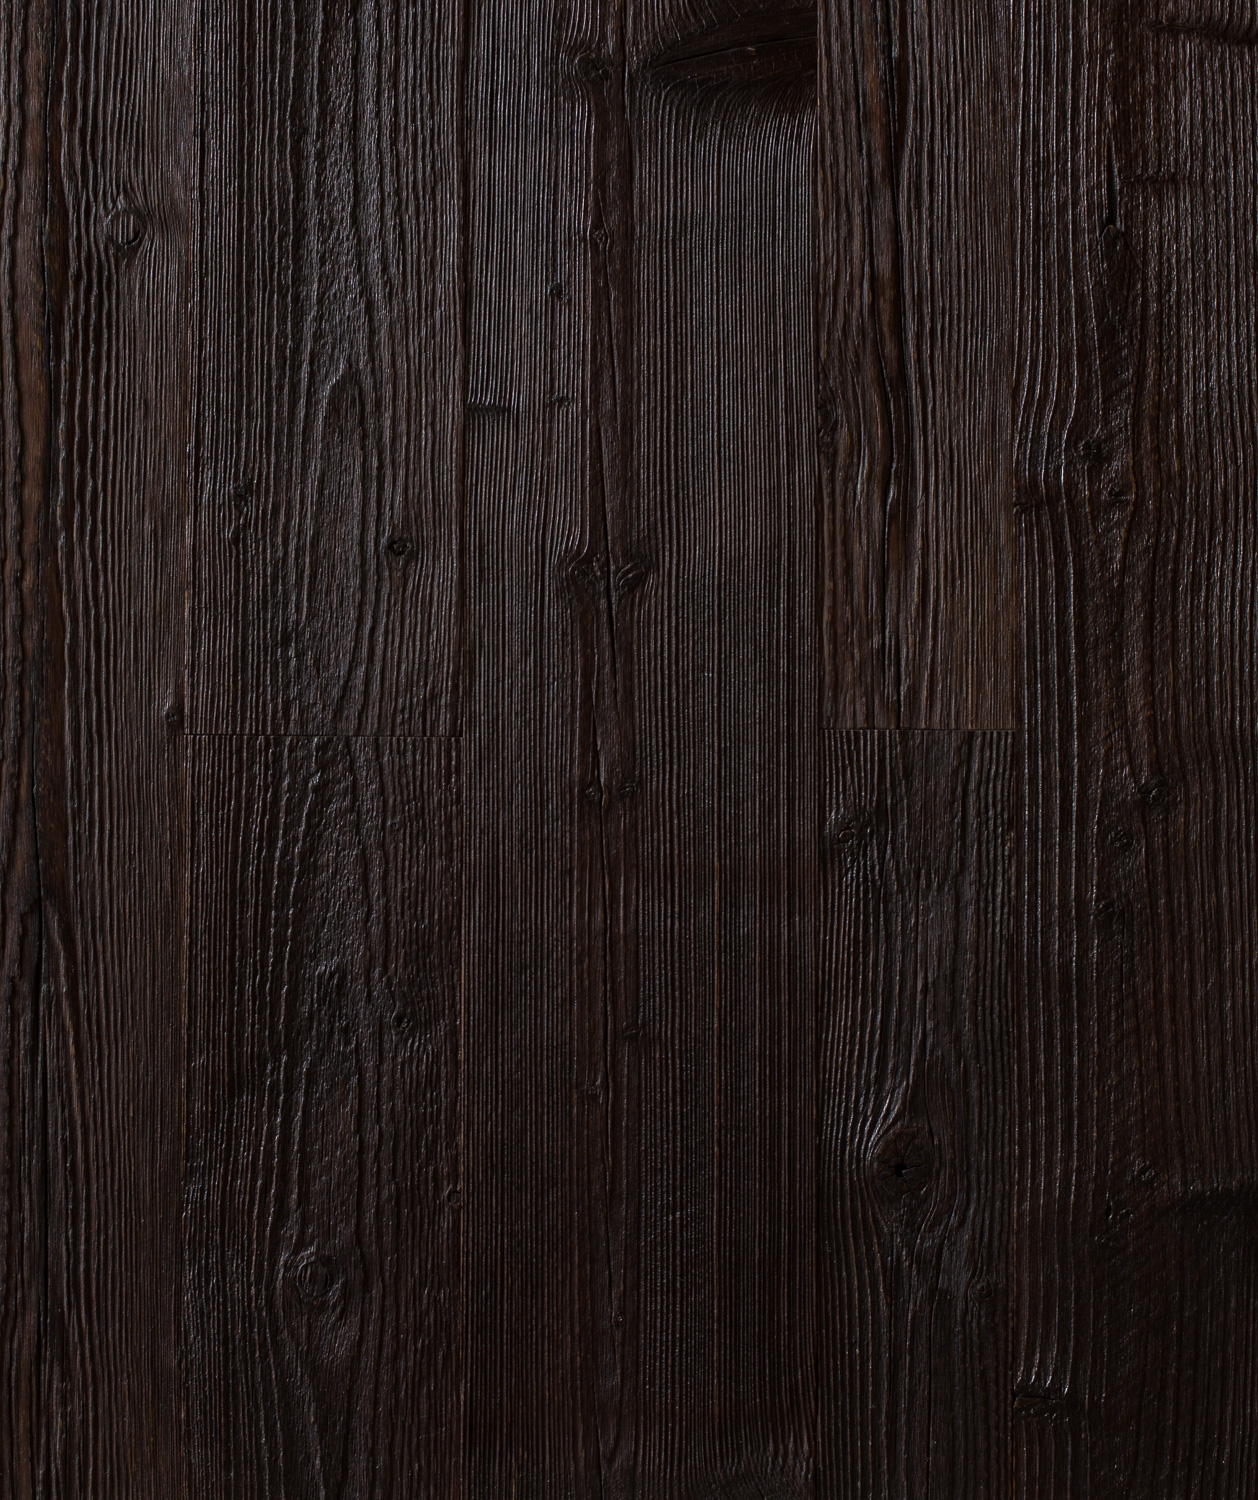 What S The Difference Between Hardwood And Softwood The